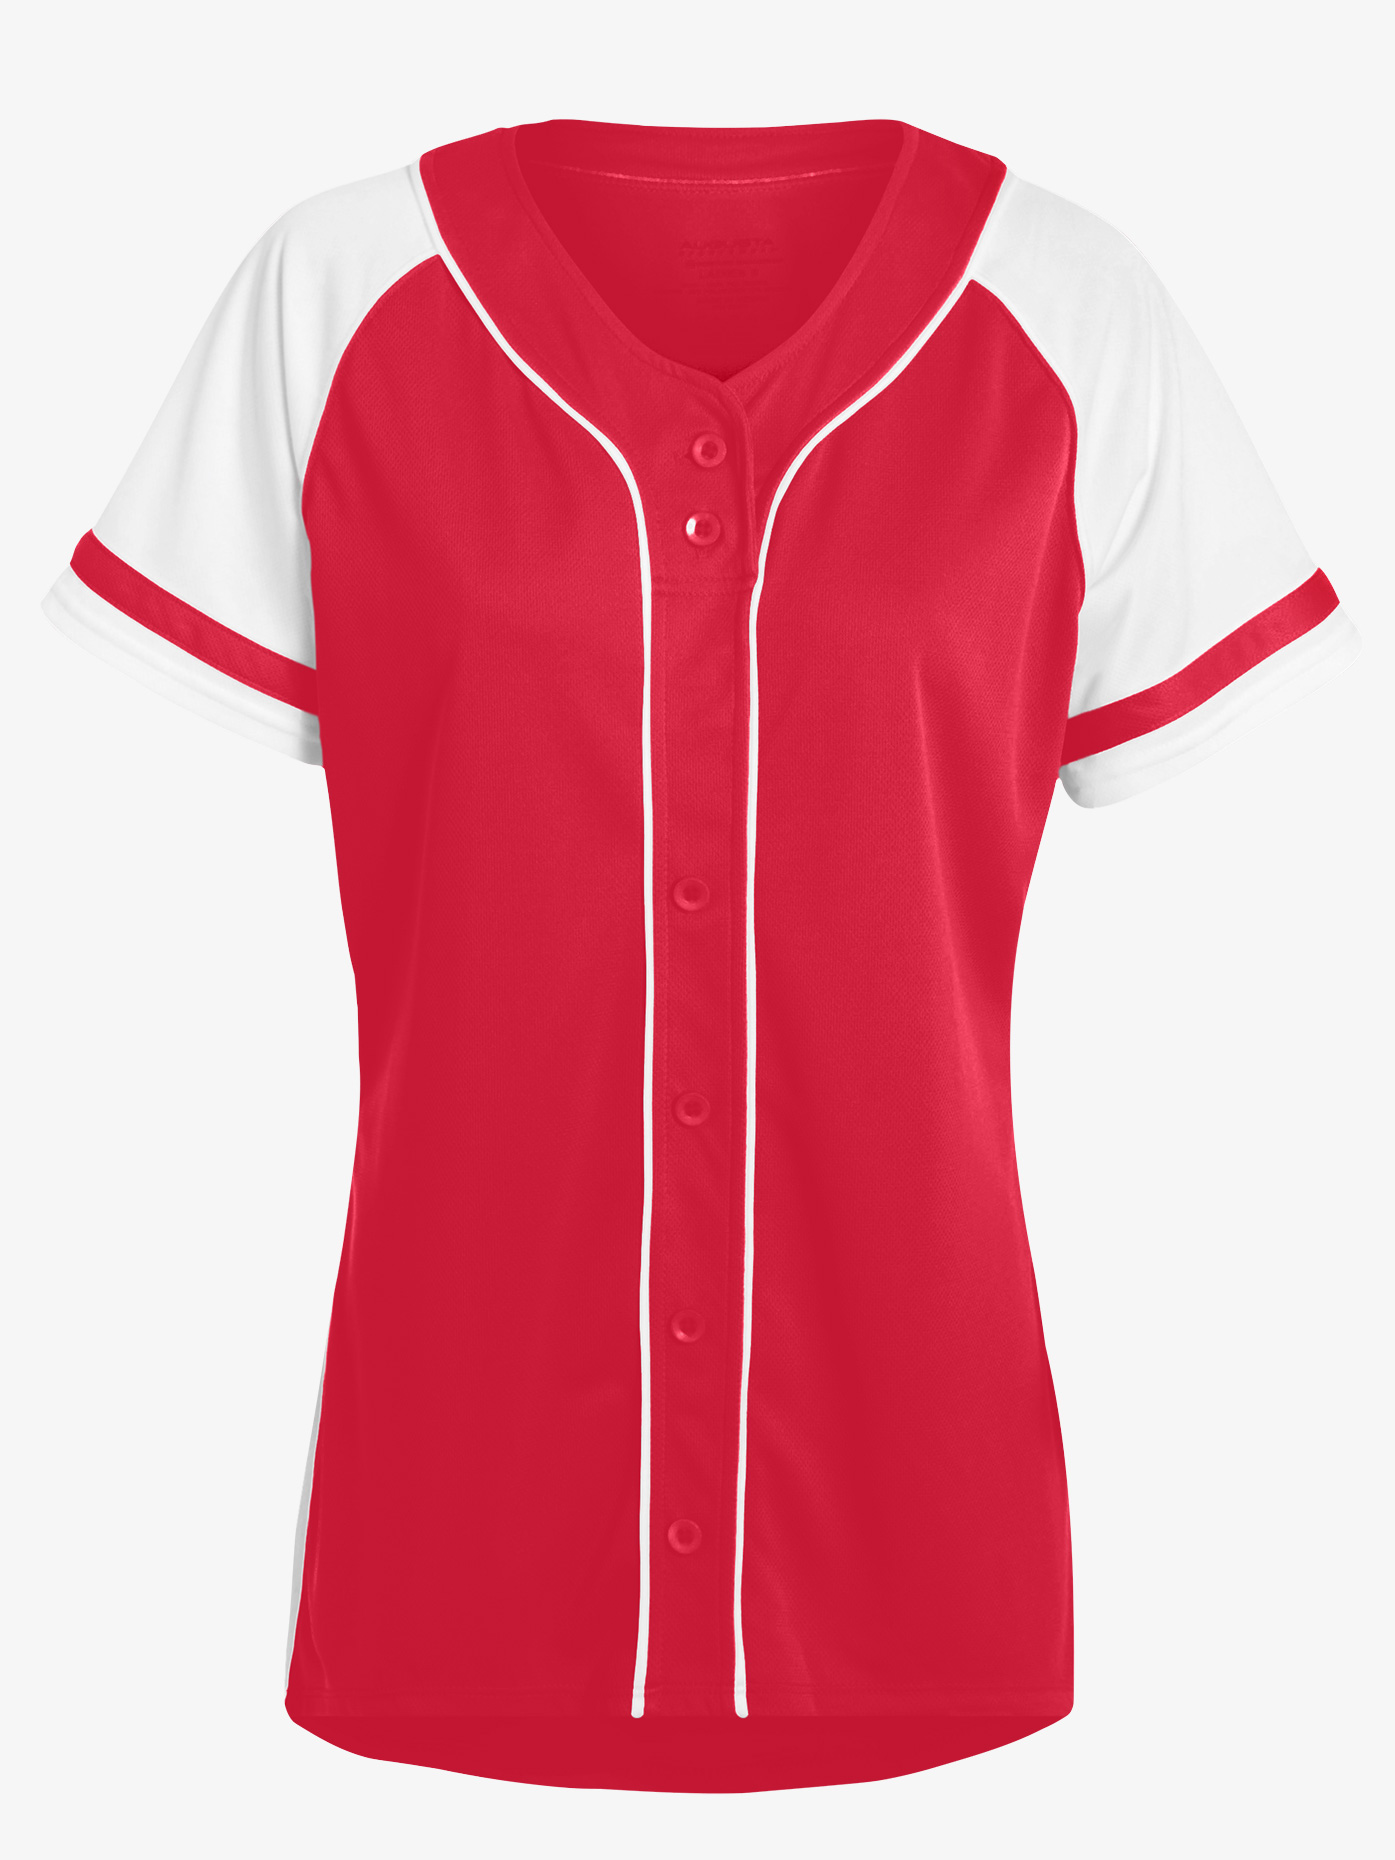 Augusta Womens Softball Style Jersey Top AUG1665E